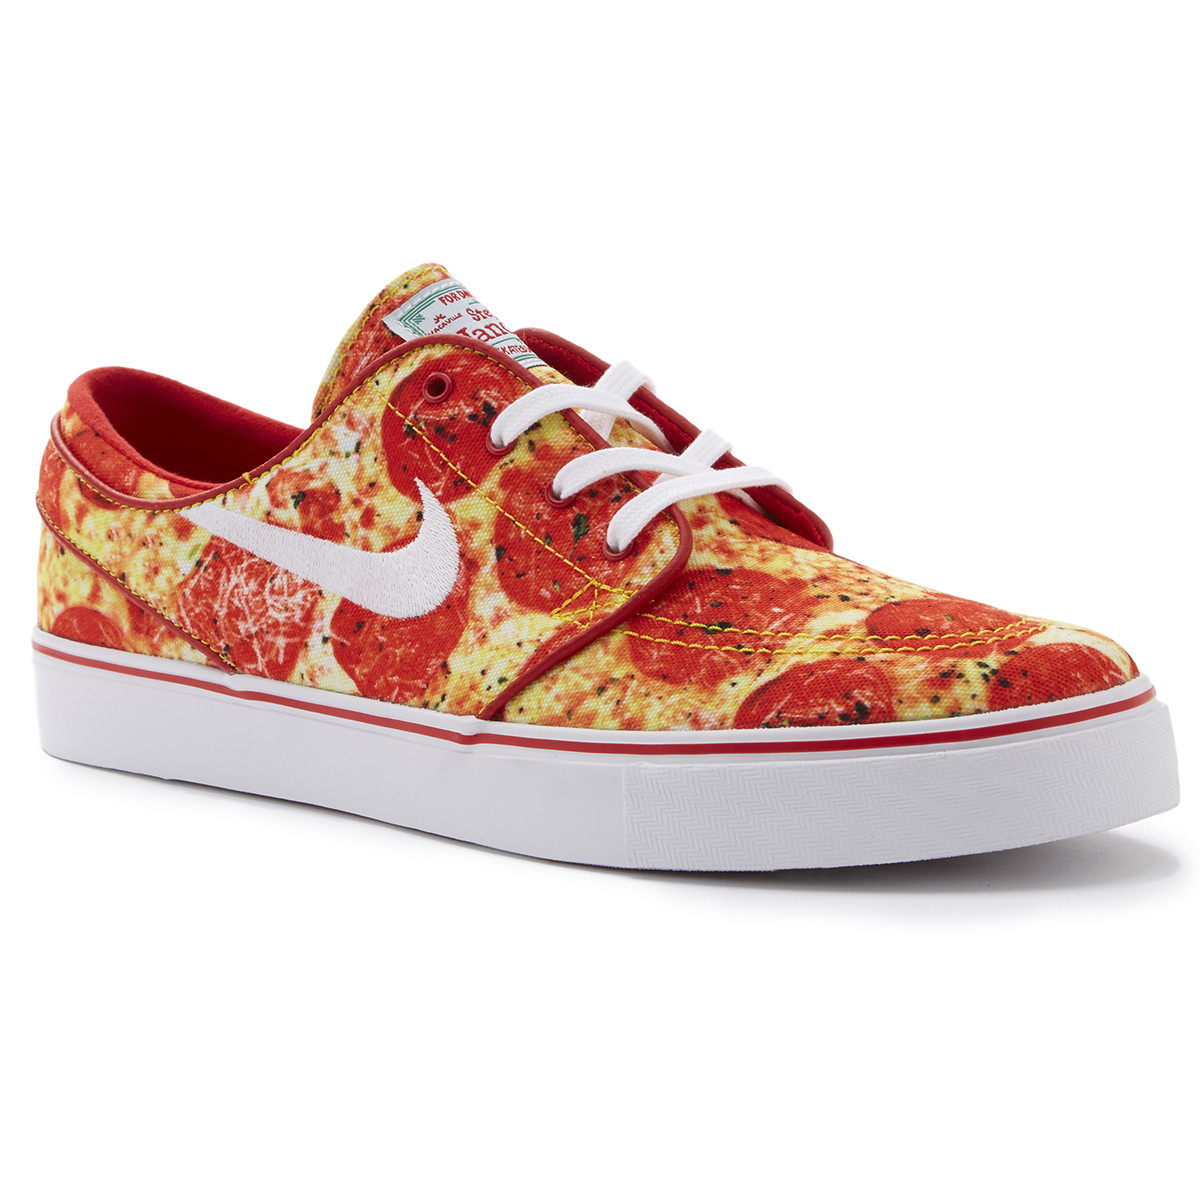 on sale 4ef09 d9d40 Nike SB X Skate Mental Zoom Stefan Janoski Pizza Shoes